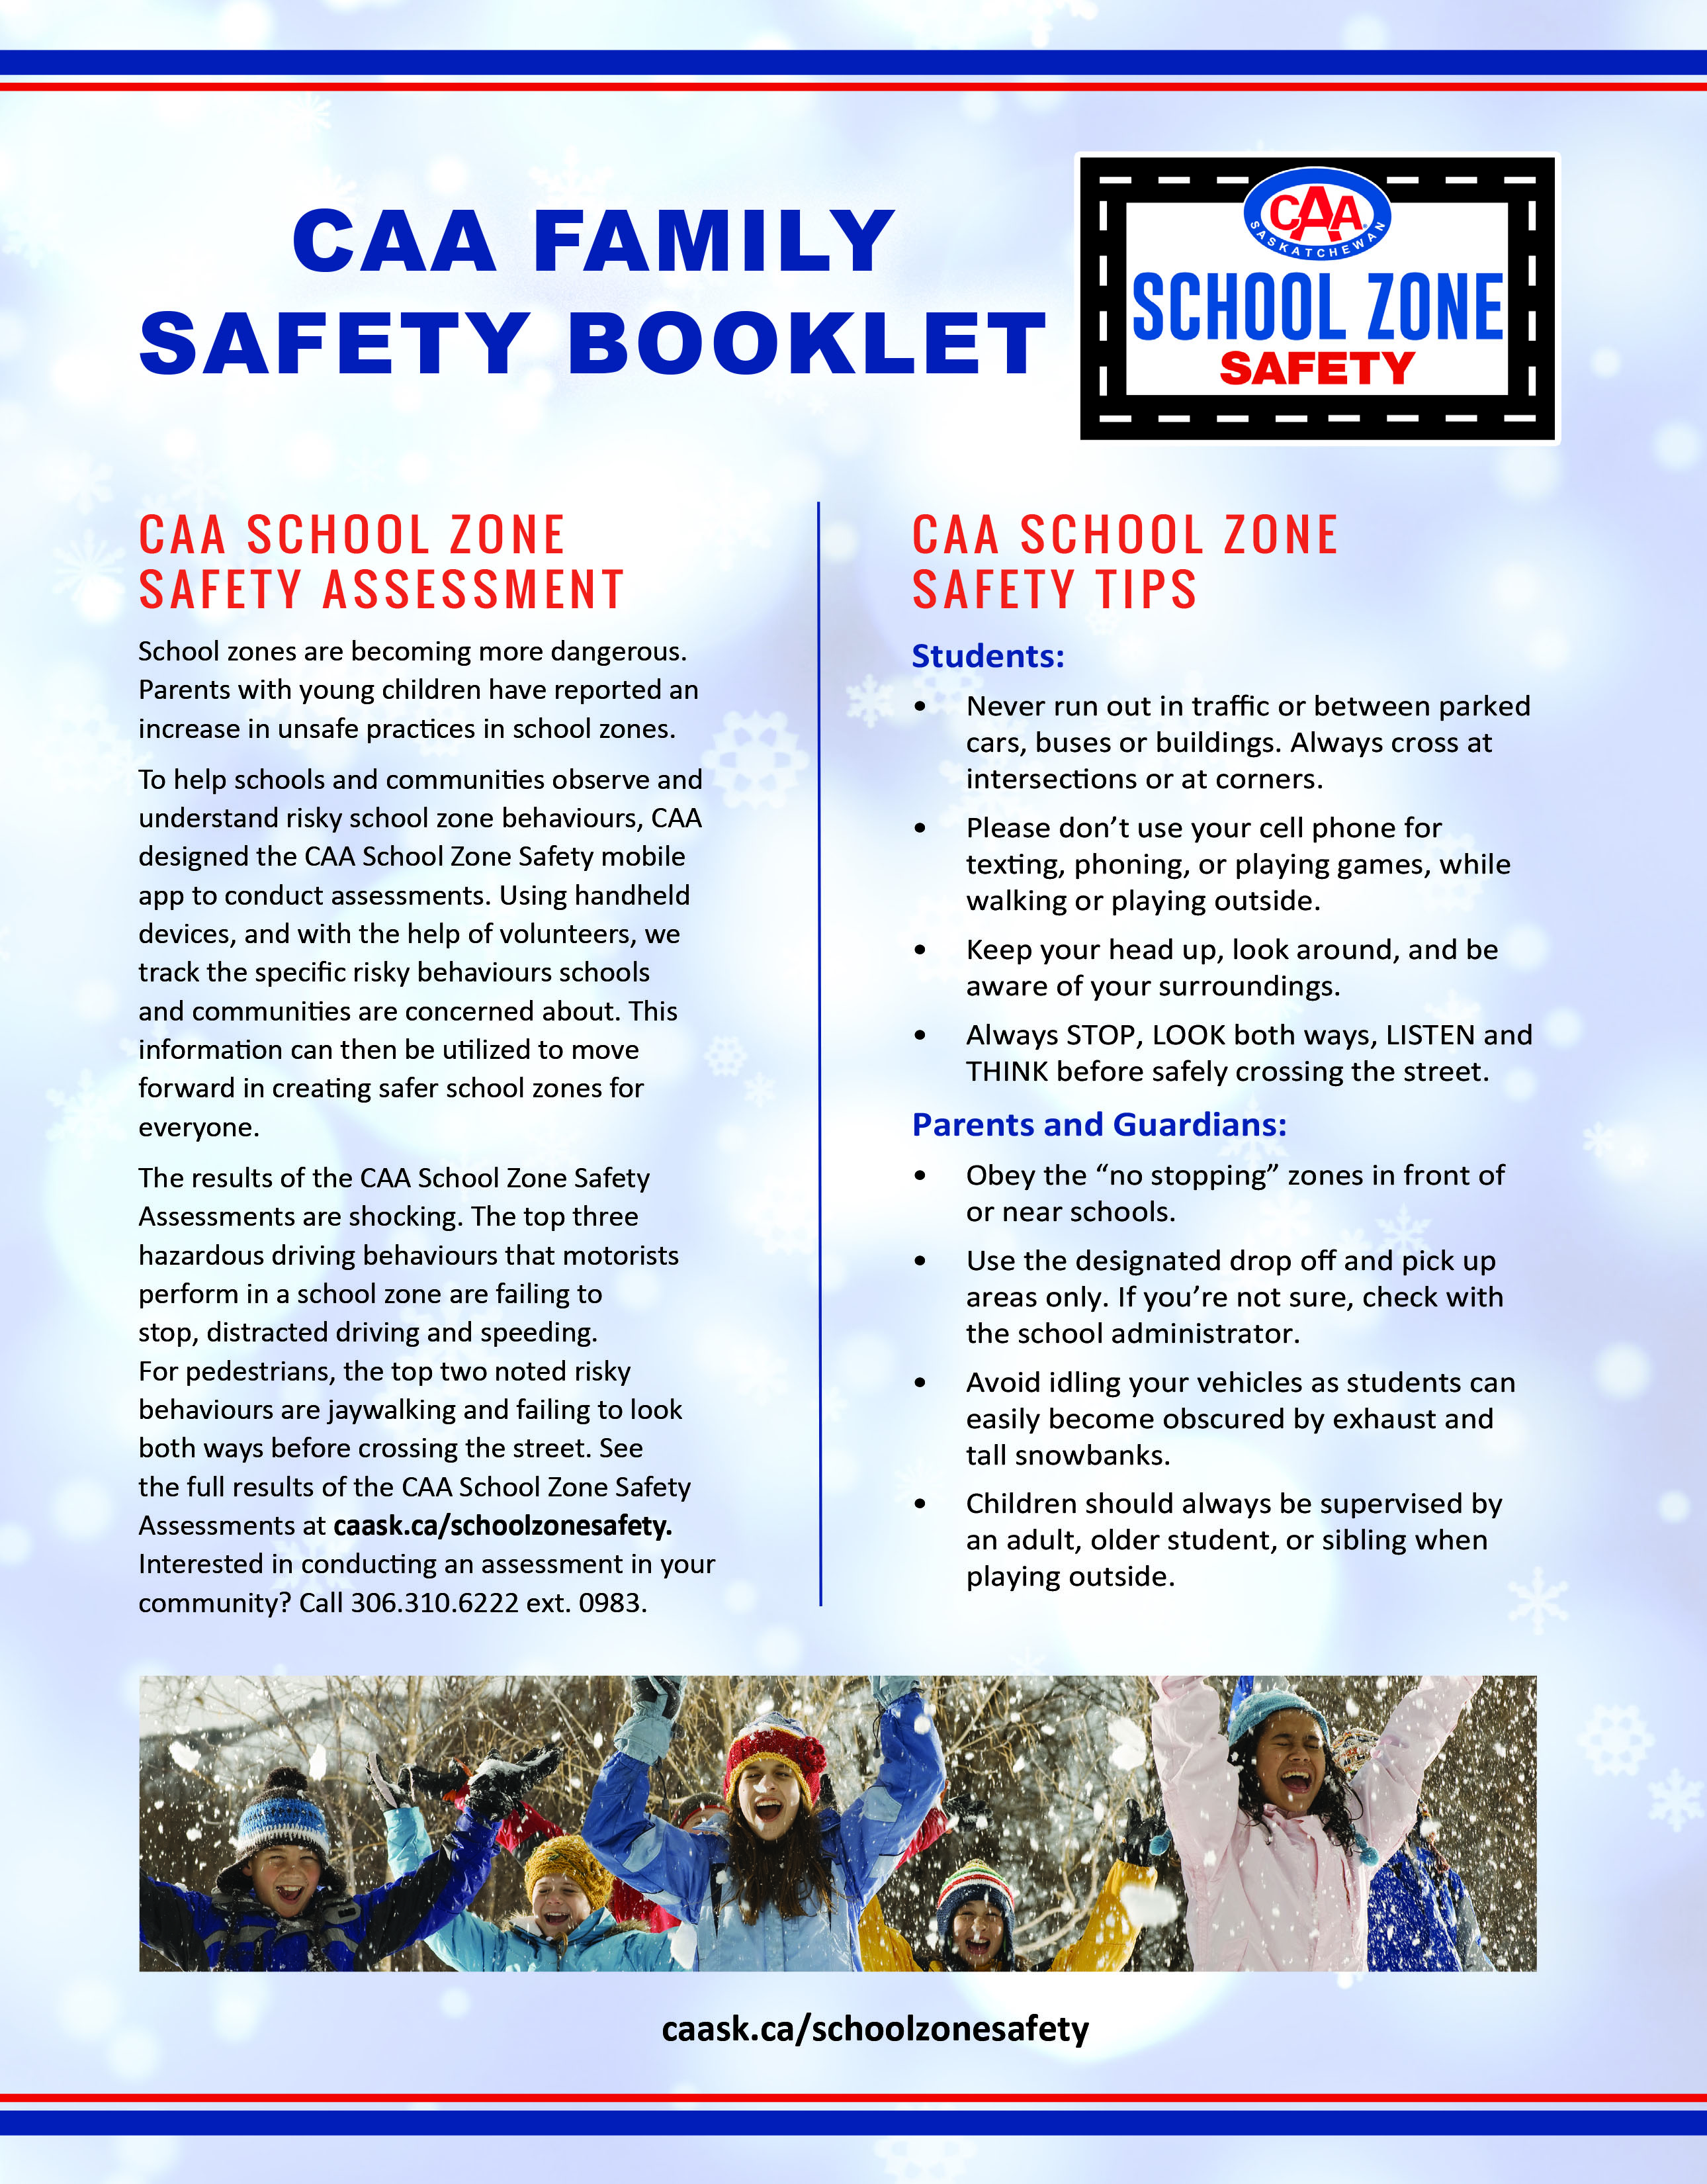 CAA Family Safety Booklet